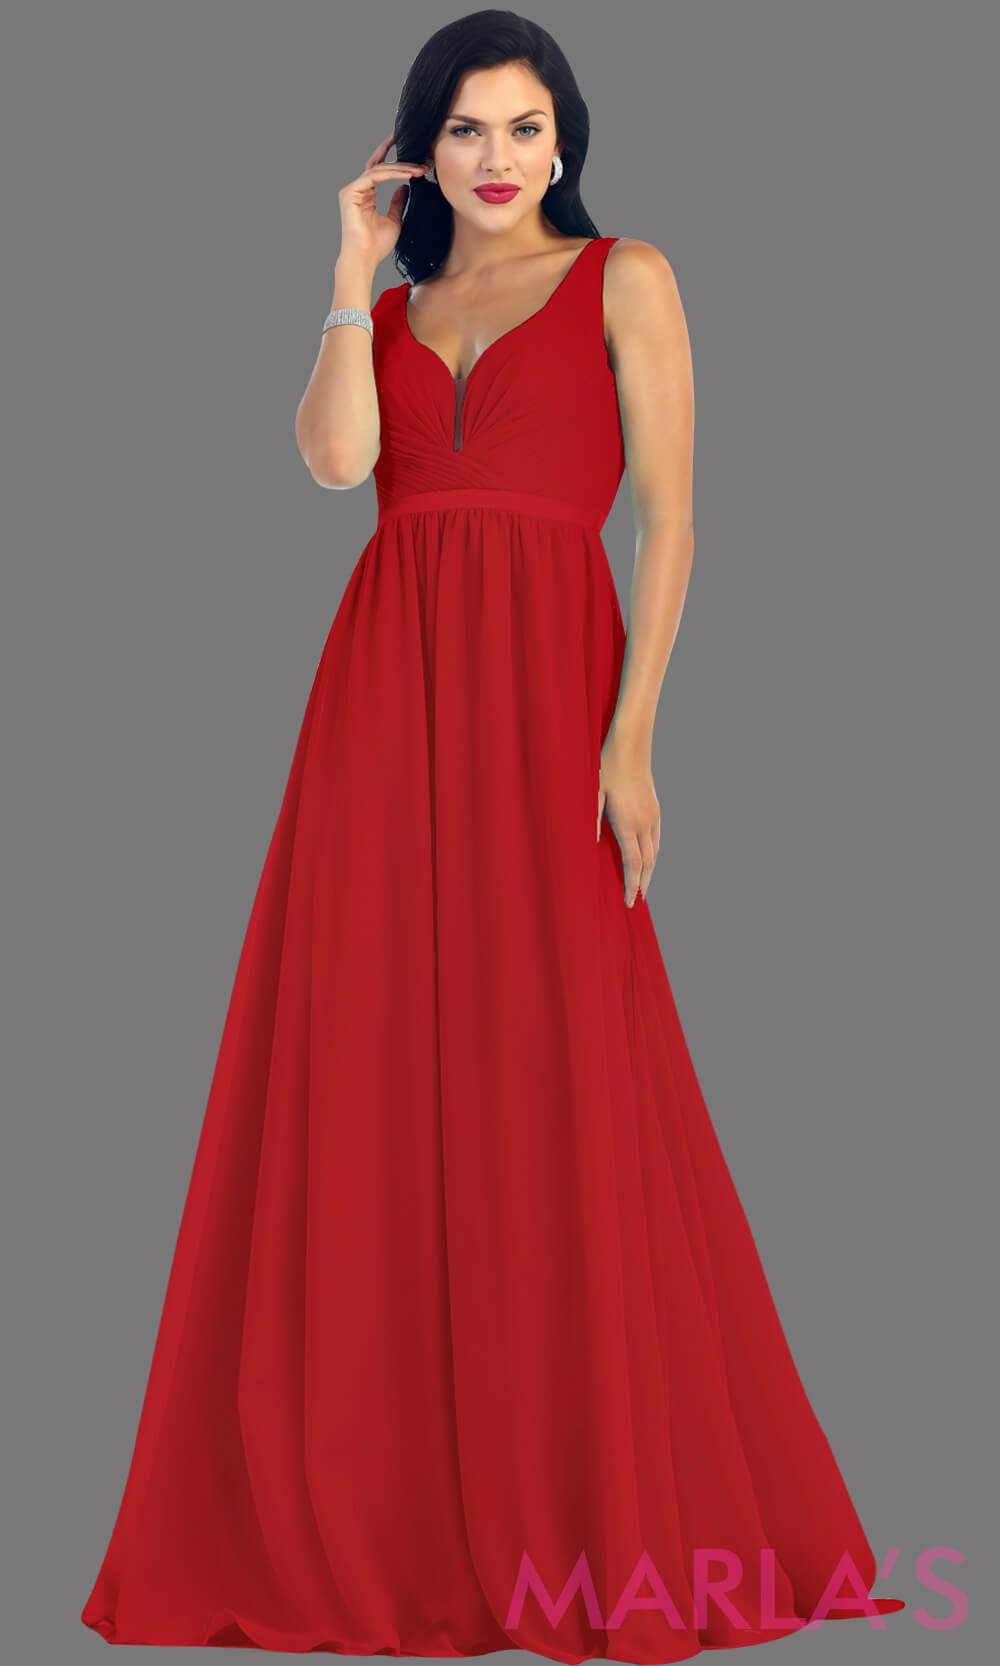 Long Red dress with wide straps and v neck dress. This simple evening gown is perfect for a wedding guest dress, simple light prom dress, or even a bridesmaid dress. This dress is available in plus size.